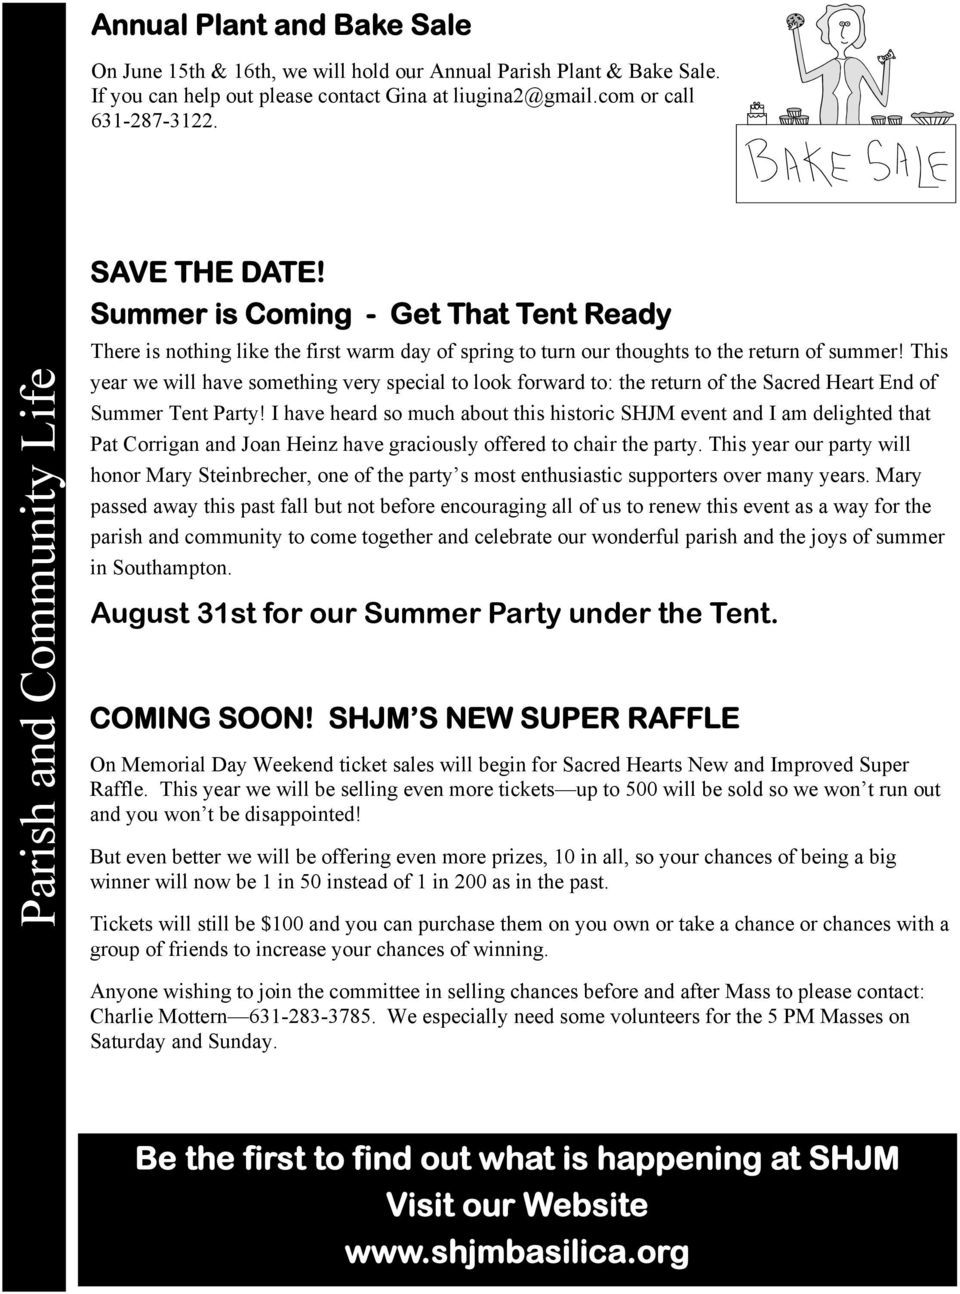 This year we will have something very special to look forward to: the return of the Sacred Heart End of Summer Tent Party!